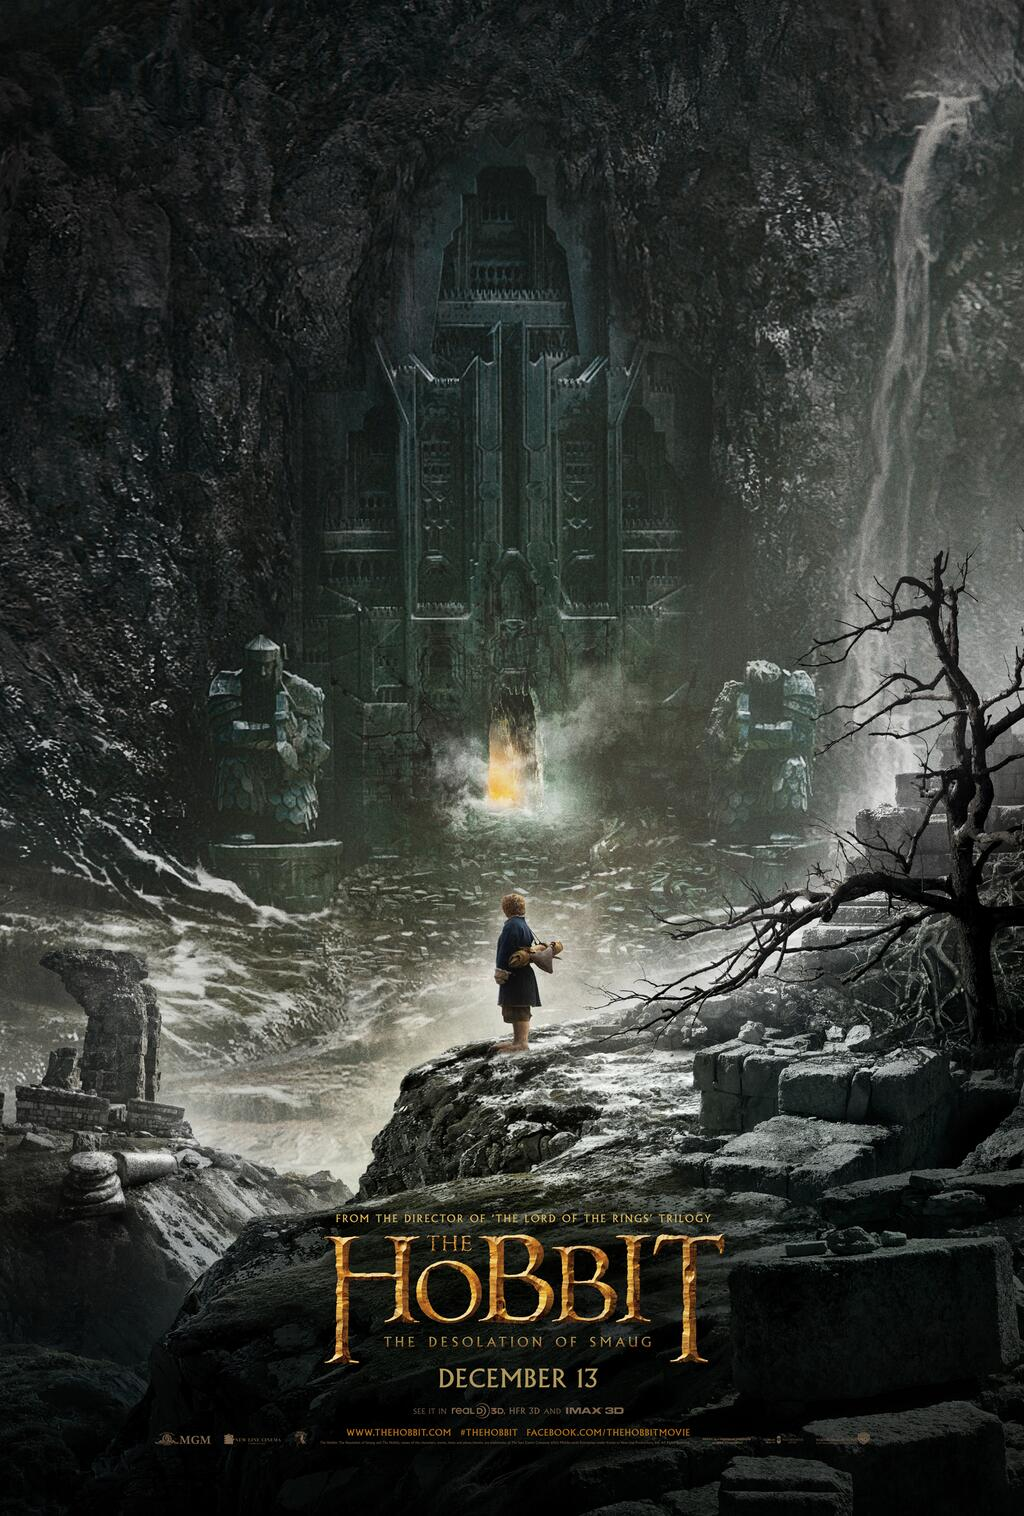 Penampakan Poster Pertama The Hobbit: The Desolation of Smaug